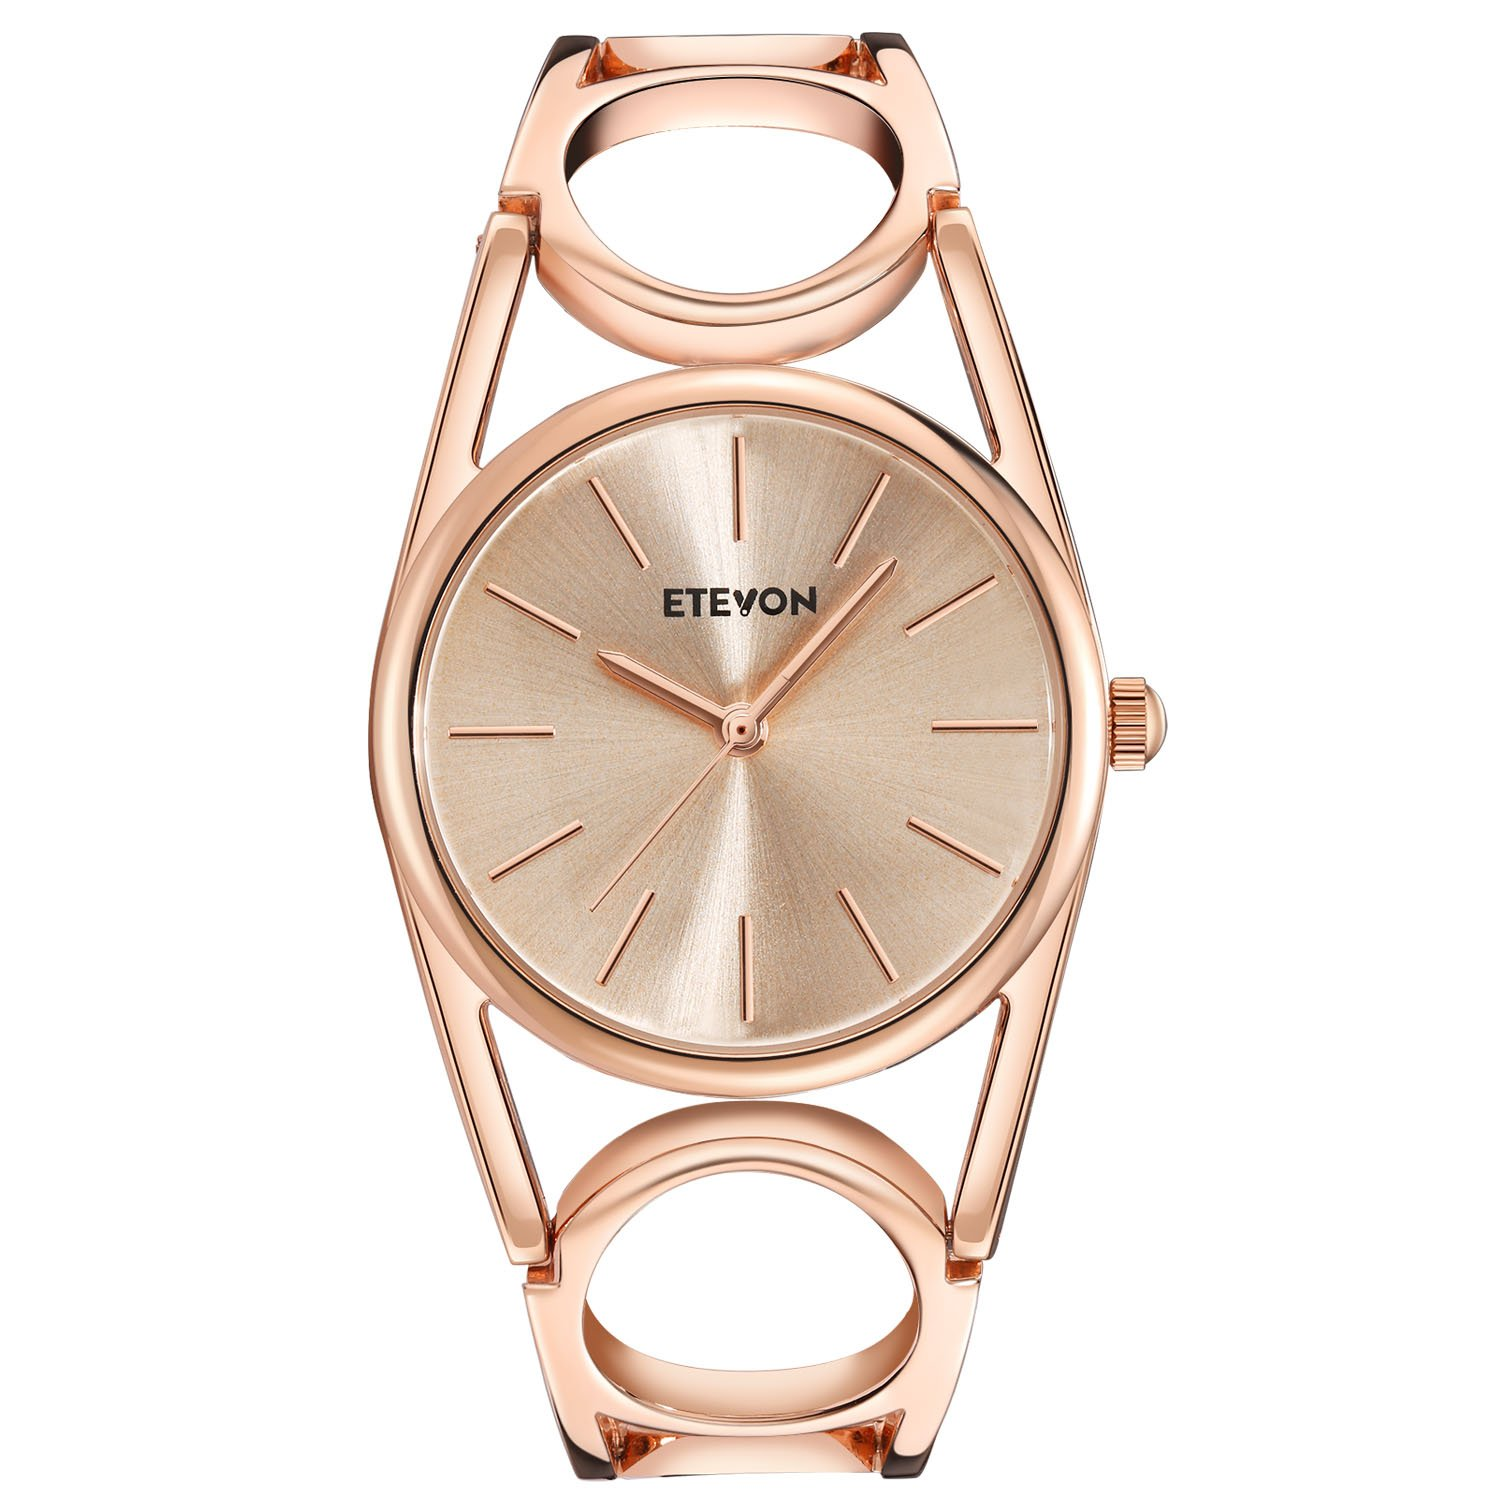 ETEVON Women's Quartz Rose Gold Wrist Watch with Simple Dial Style and Round Hollow Bracelet Water Resistant, Fashion Luxury Dress Watches for Women